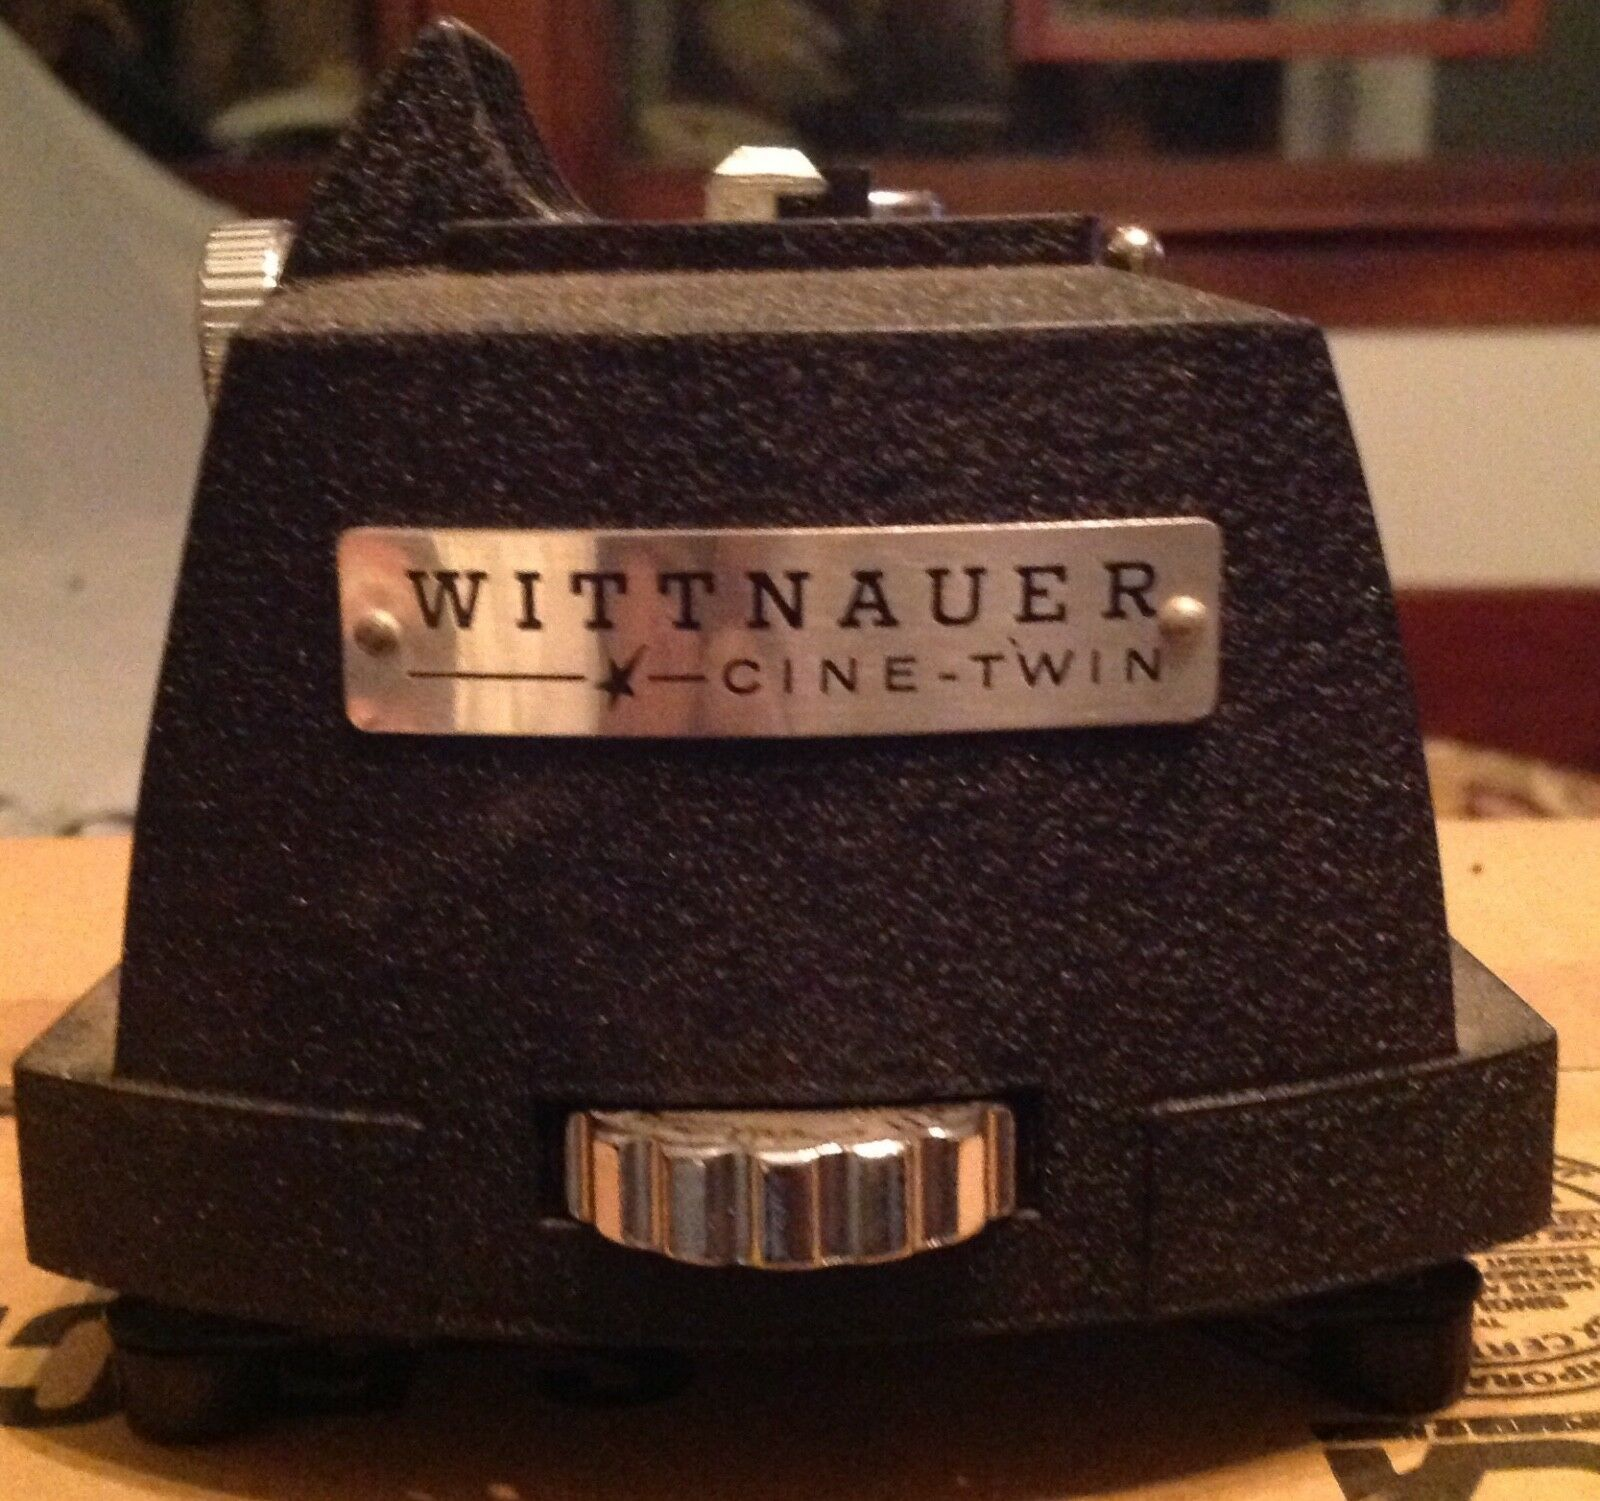 the wittnauer cine twin combo projector camera Wittnauer was actually a famous jeweler of all things, and the expensive cine-twin was only sold in jewelry stores interesting extra: even before the cine-twin, the cinématographe film camera/projector/developer was invented by french inventor, léon bouly, back in 1892.